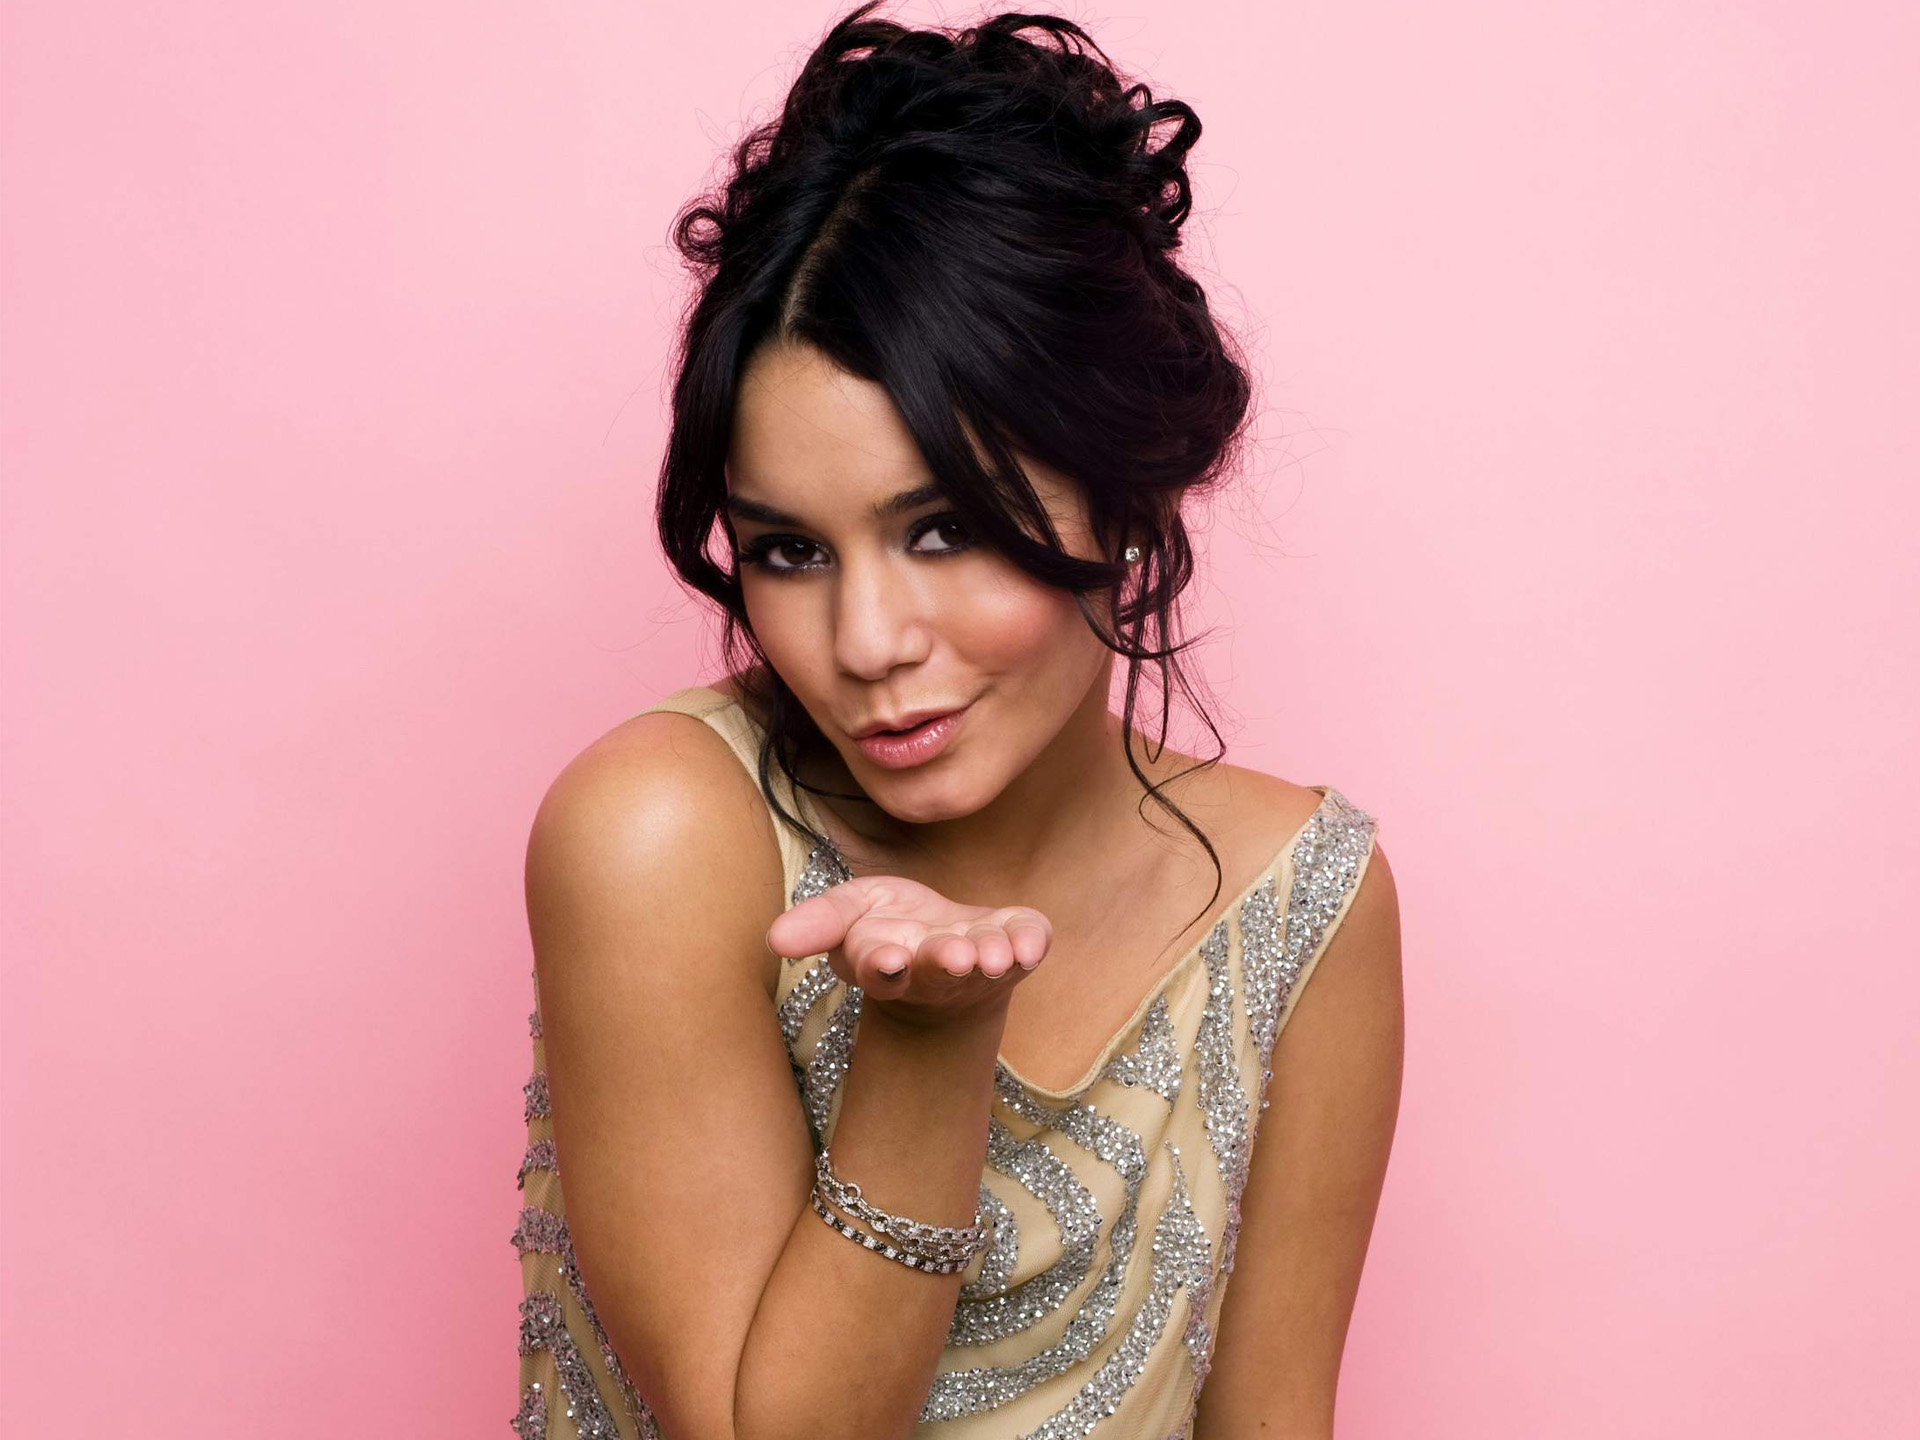 High School Musical Girl Vanessa Anne Hudgens 243.72 Kb